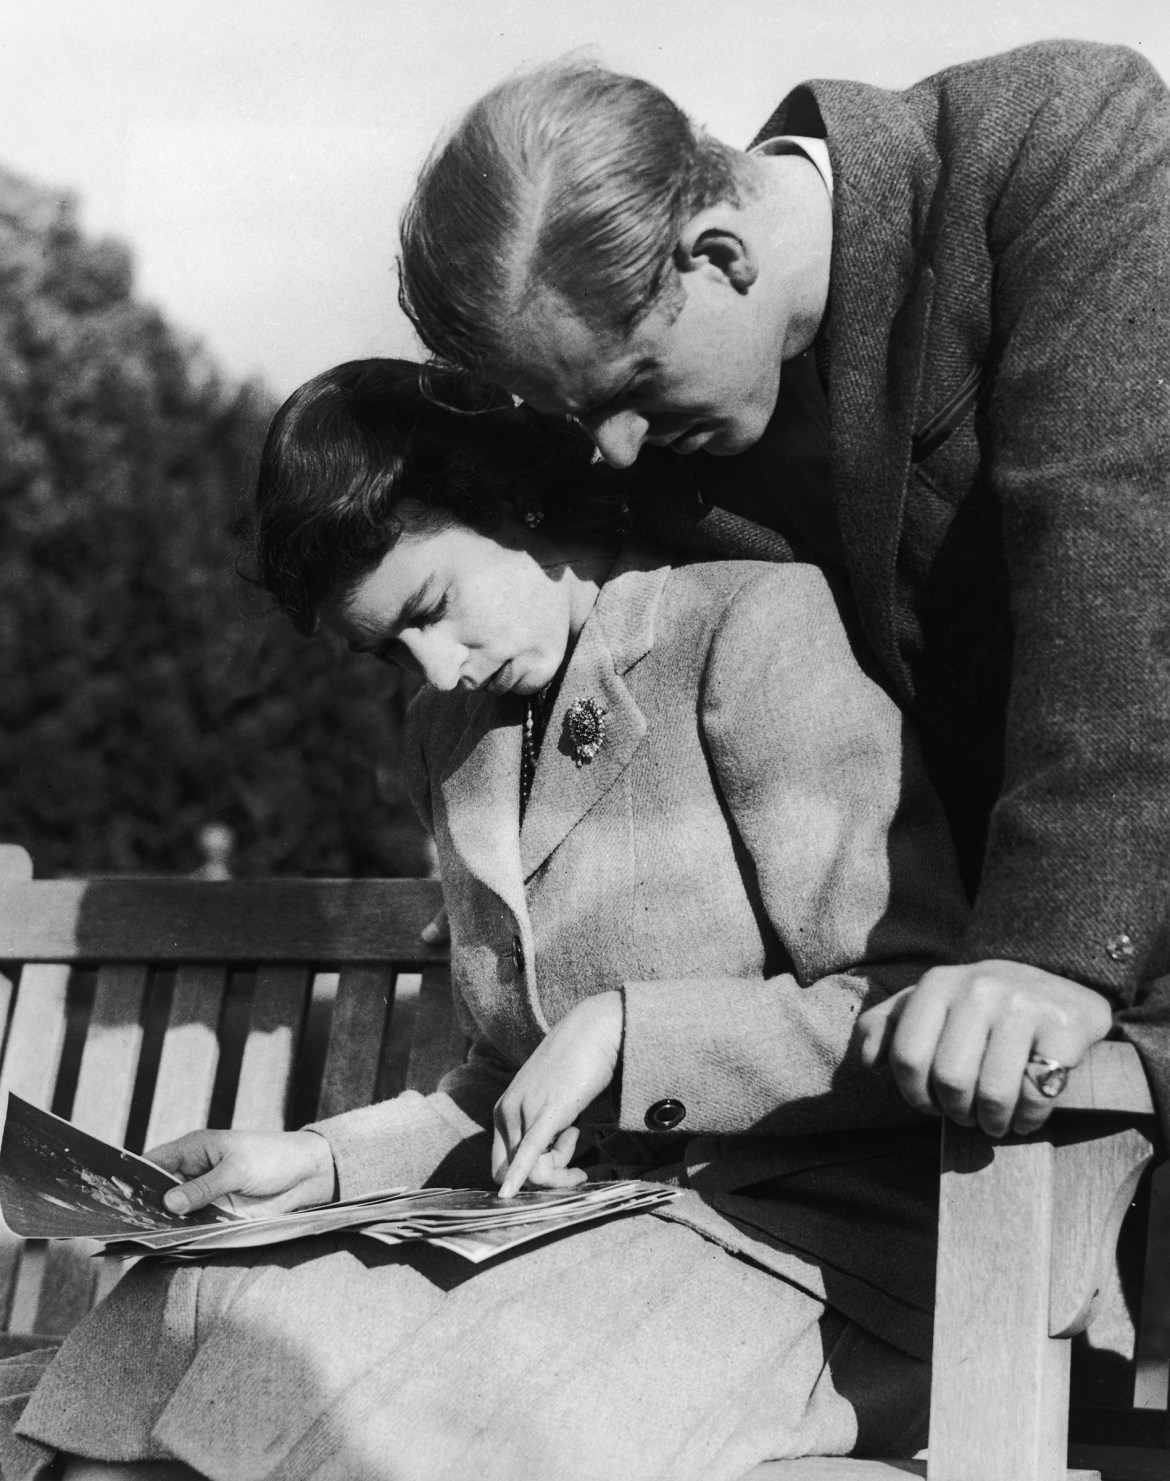 Princess Elizabeth and Philip Mountbatten look at their wedding photographs while on honeymoon in Romsey, Hampshire, Nov. 1947.